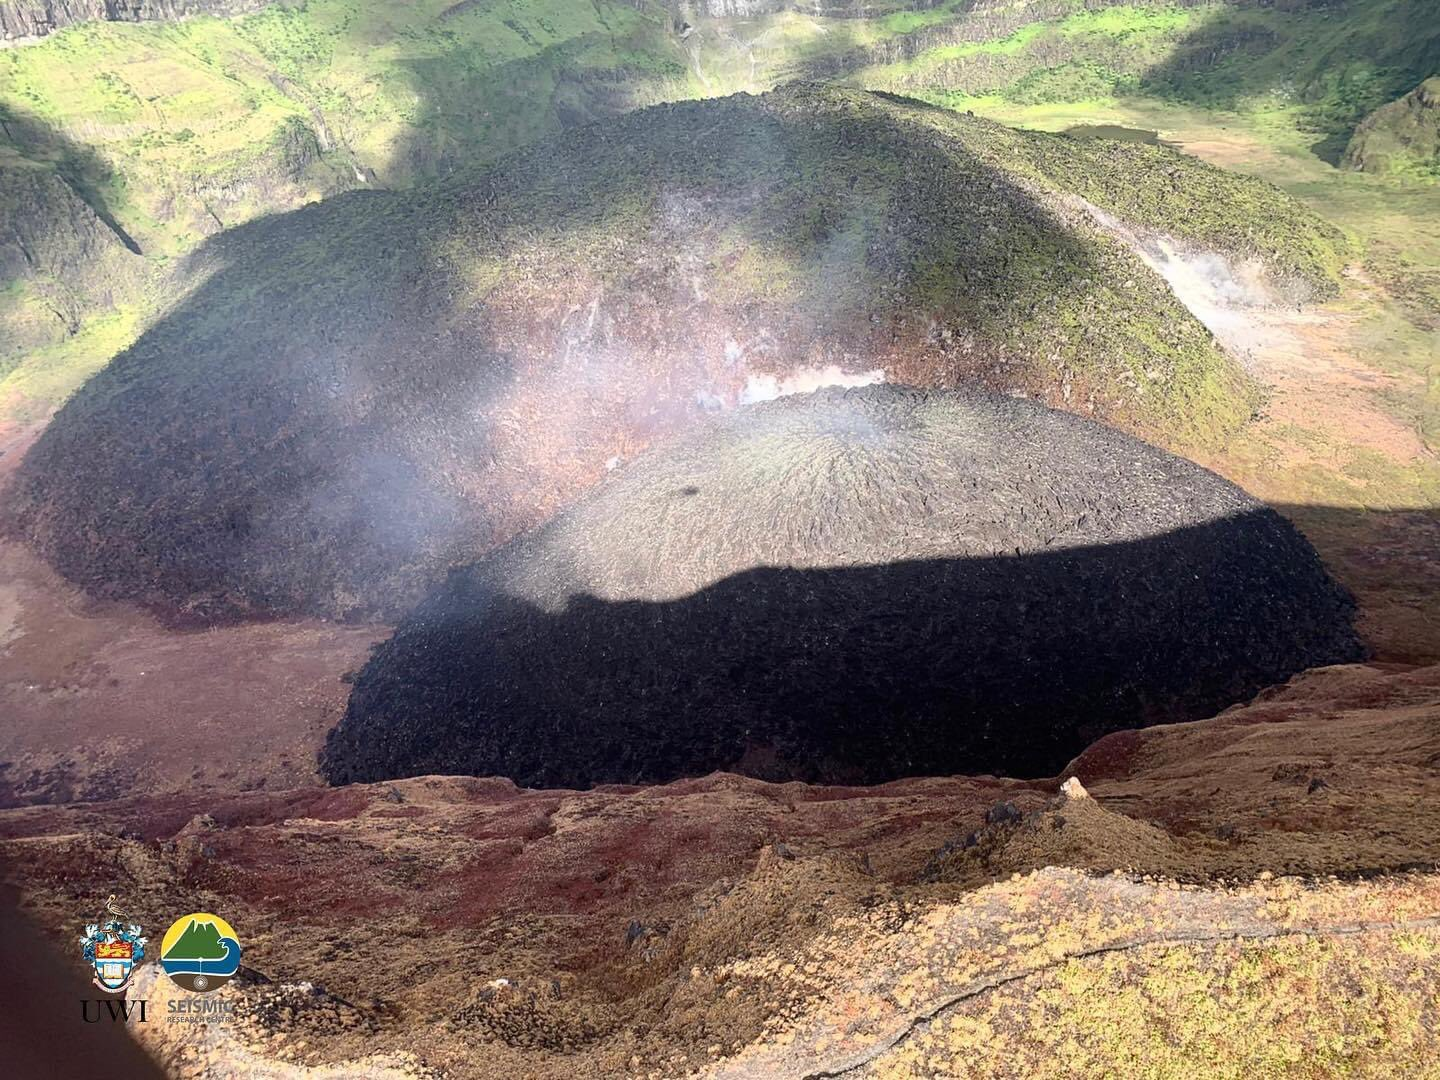 The actively growing lava dome in comparison to the 1979 lava dome (image: UWI-SRC)